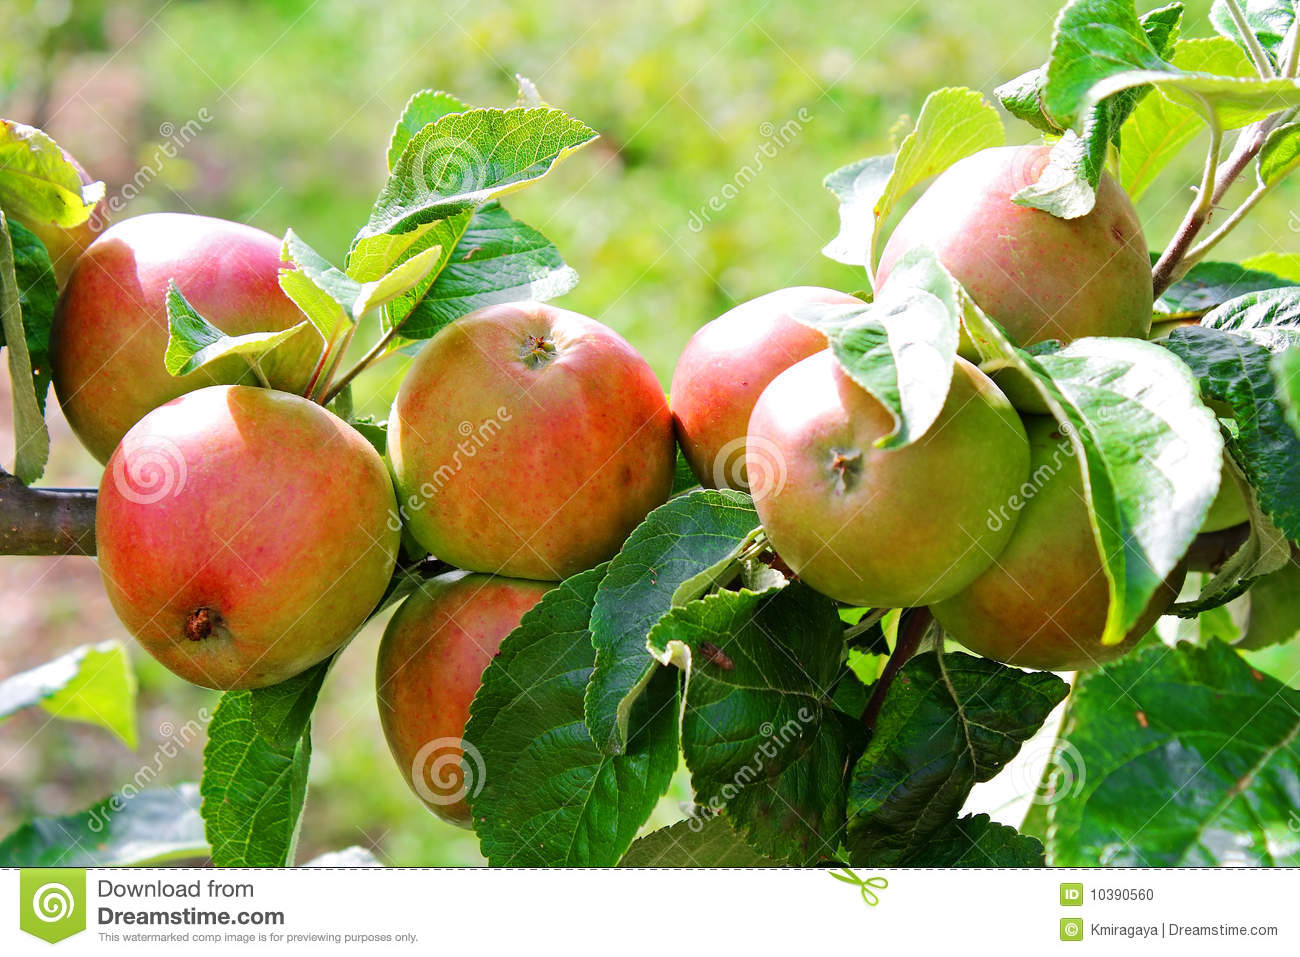 Red Apples In A Tree Branch Stock Photo - Image: 10390560